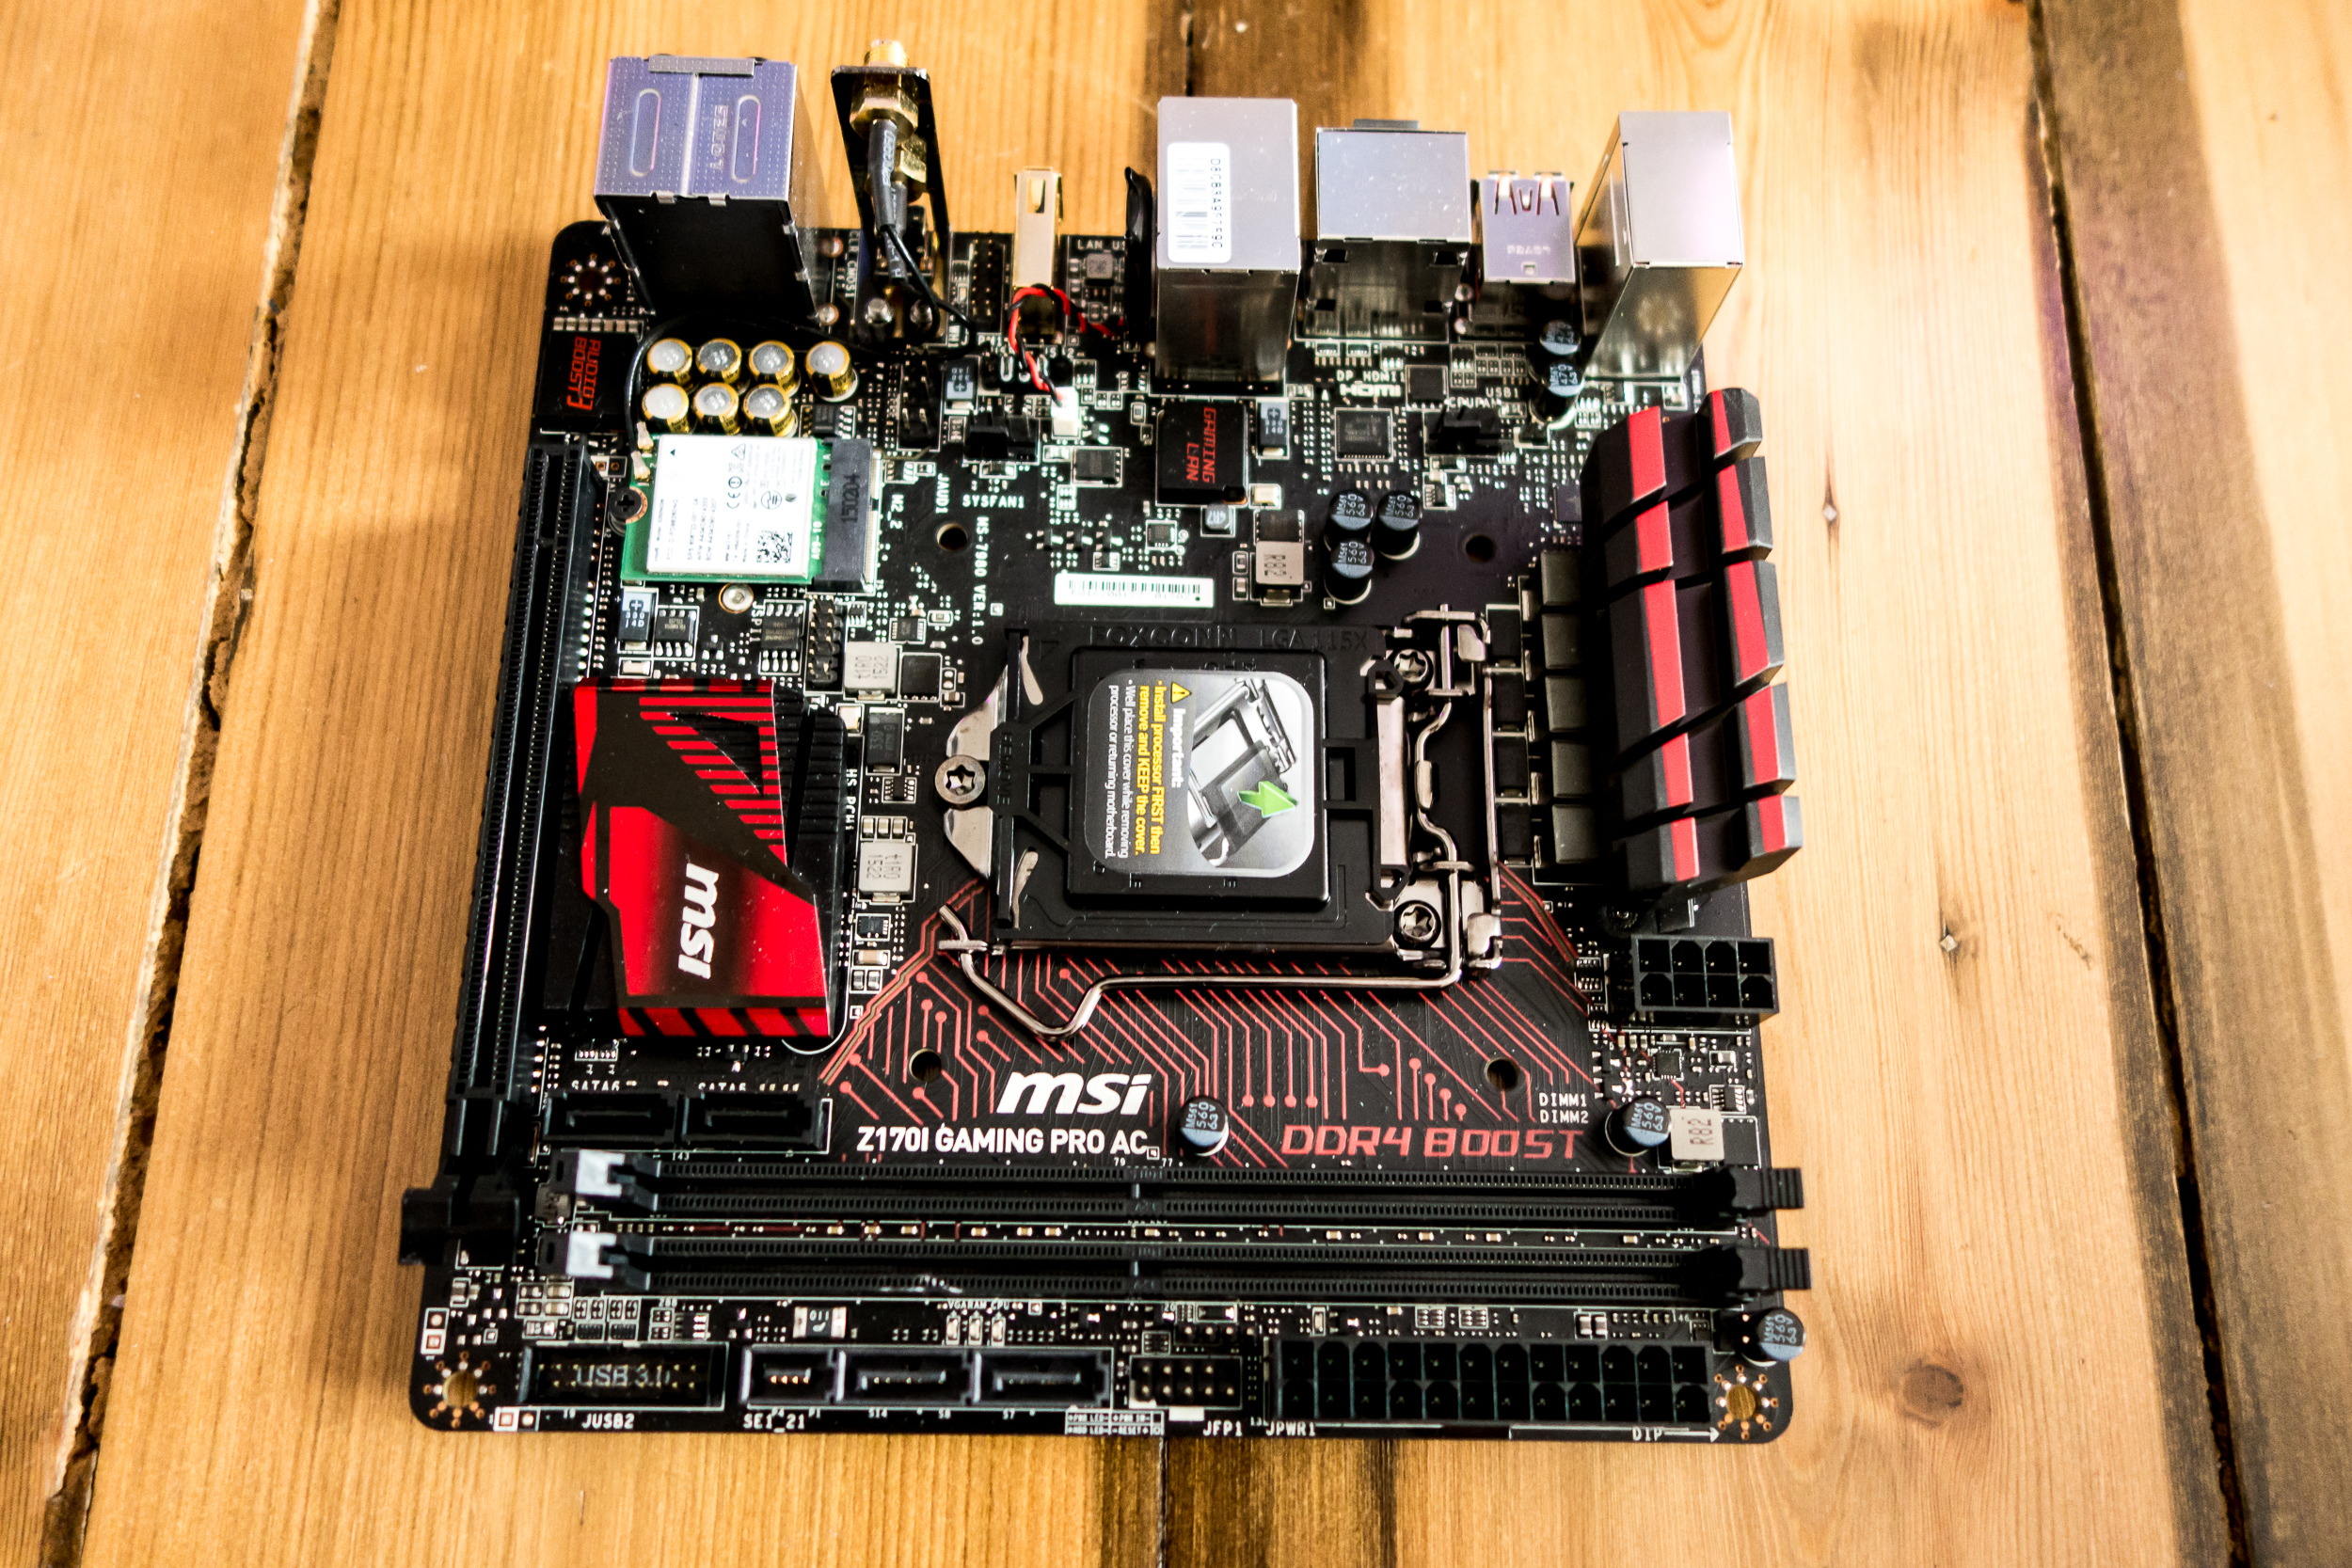 MSI's Gaming Z170I motherboard is one of the best value Skylake boards around, and doesn't skimp on the features.